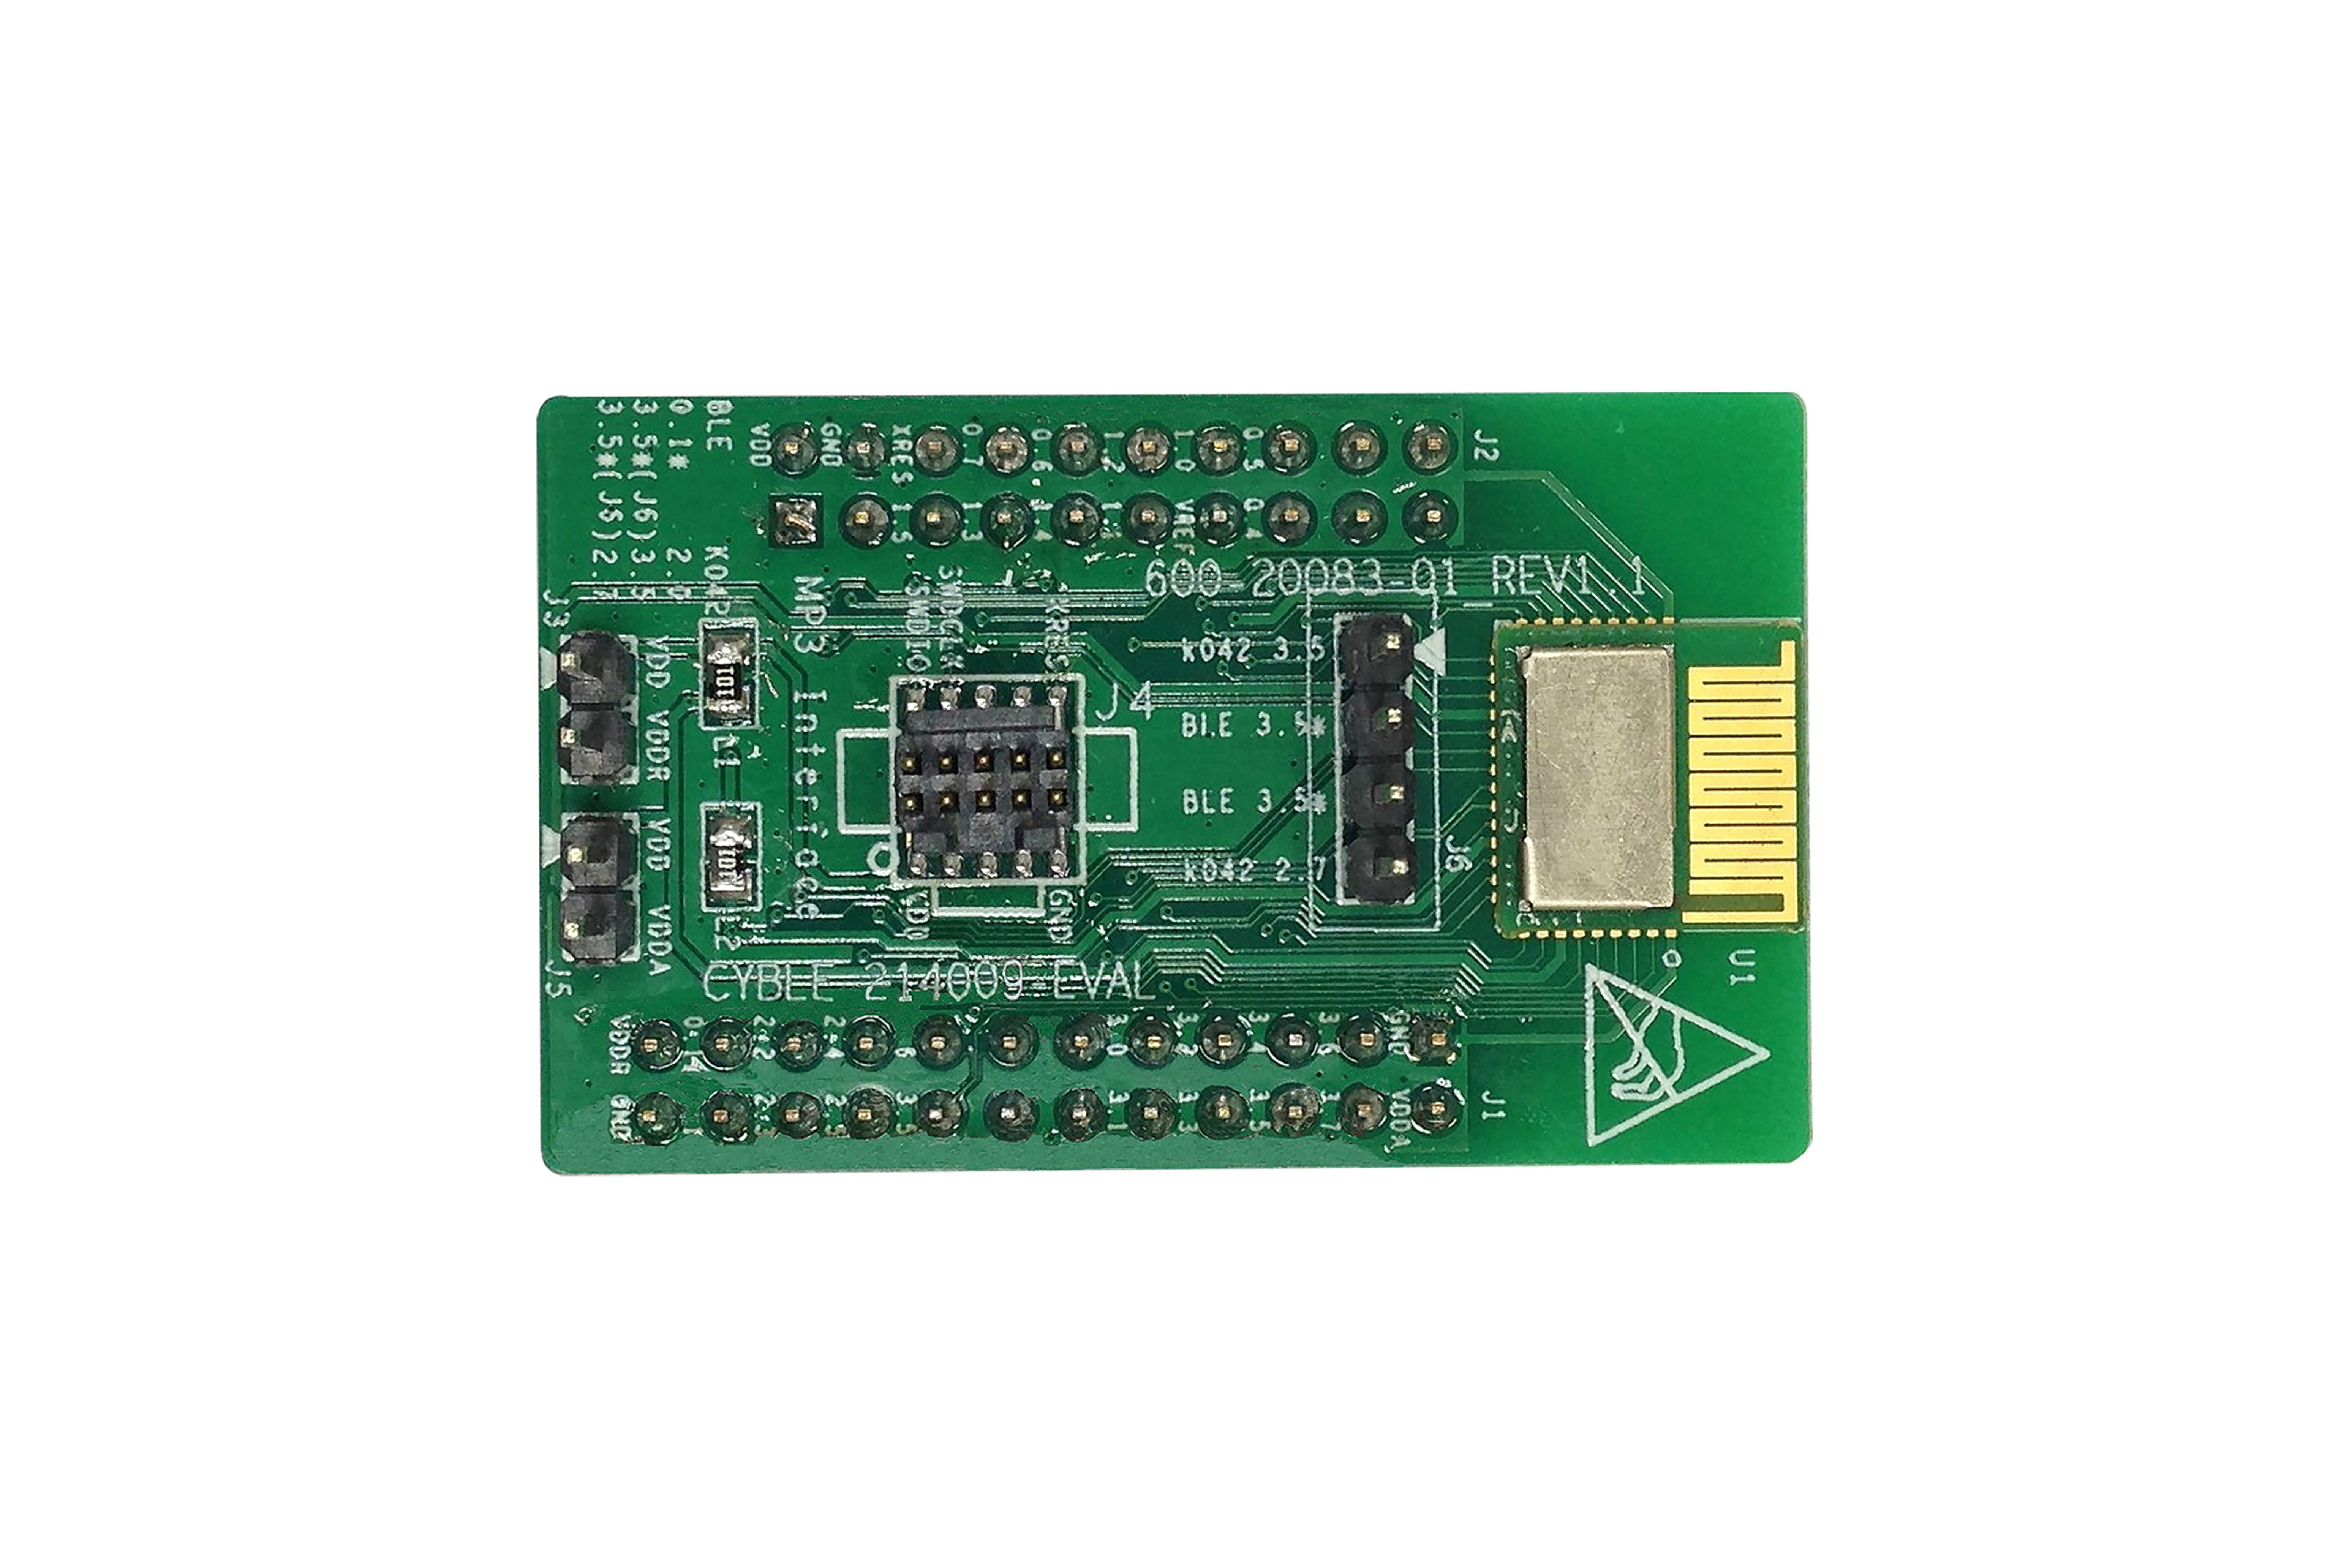 CYBLE-214009 BLE PSoC-Evaluierungsplatine